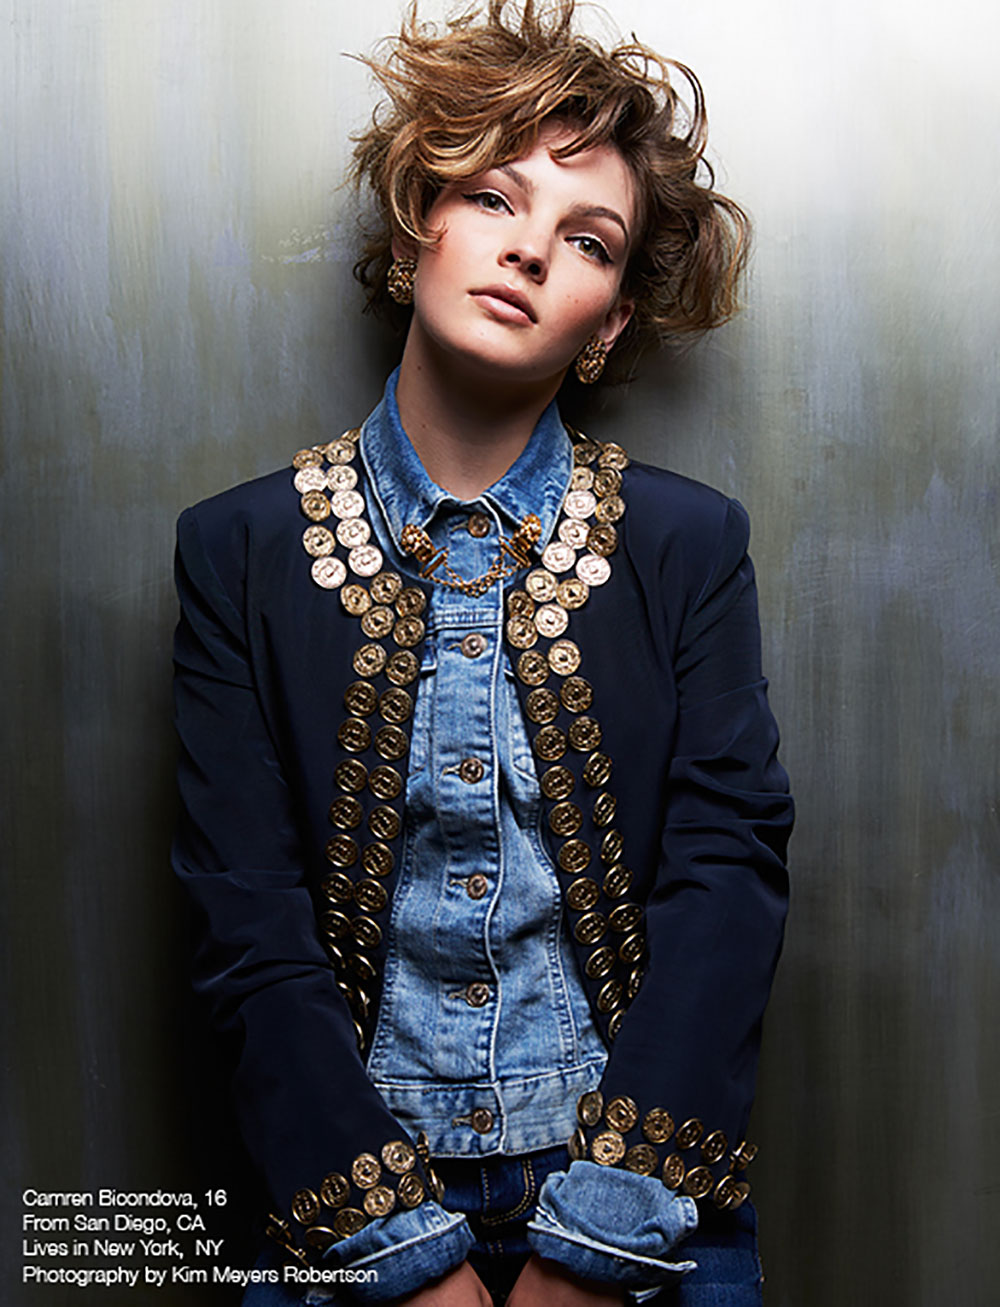 Camren Bicondova - Kim Meyers Robertson - The Untitled Magazine Issue 8_3